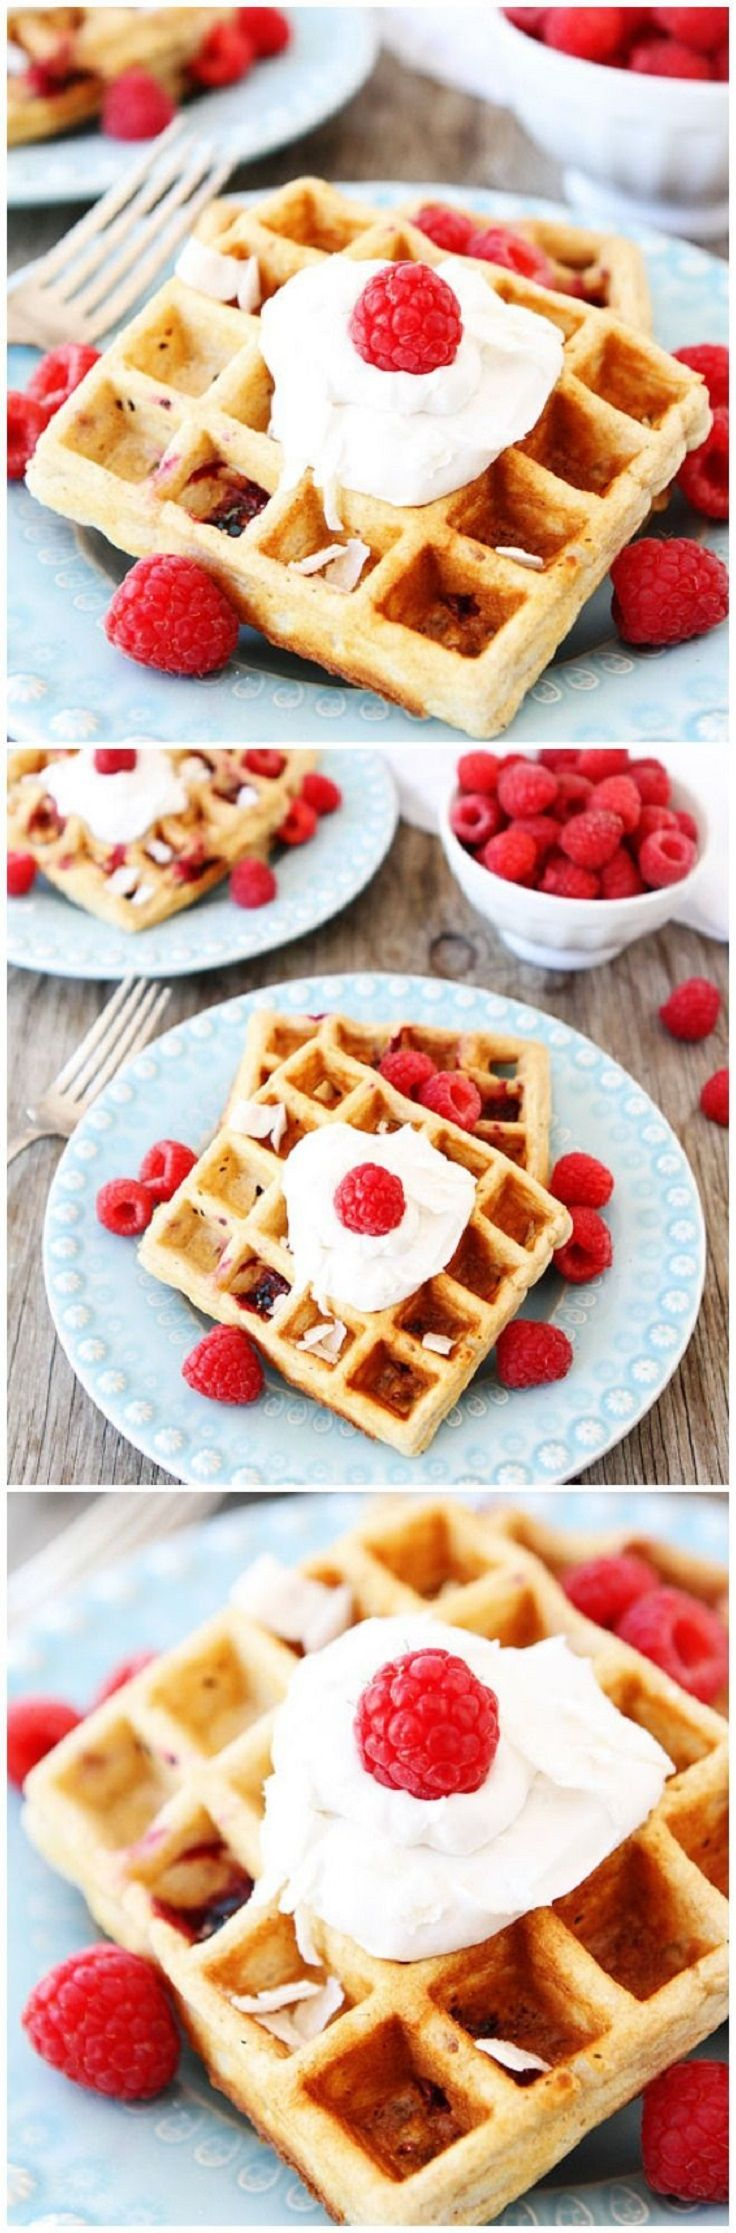 Coconut Raspberry Waffles with Coconut Whipped Cream